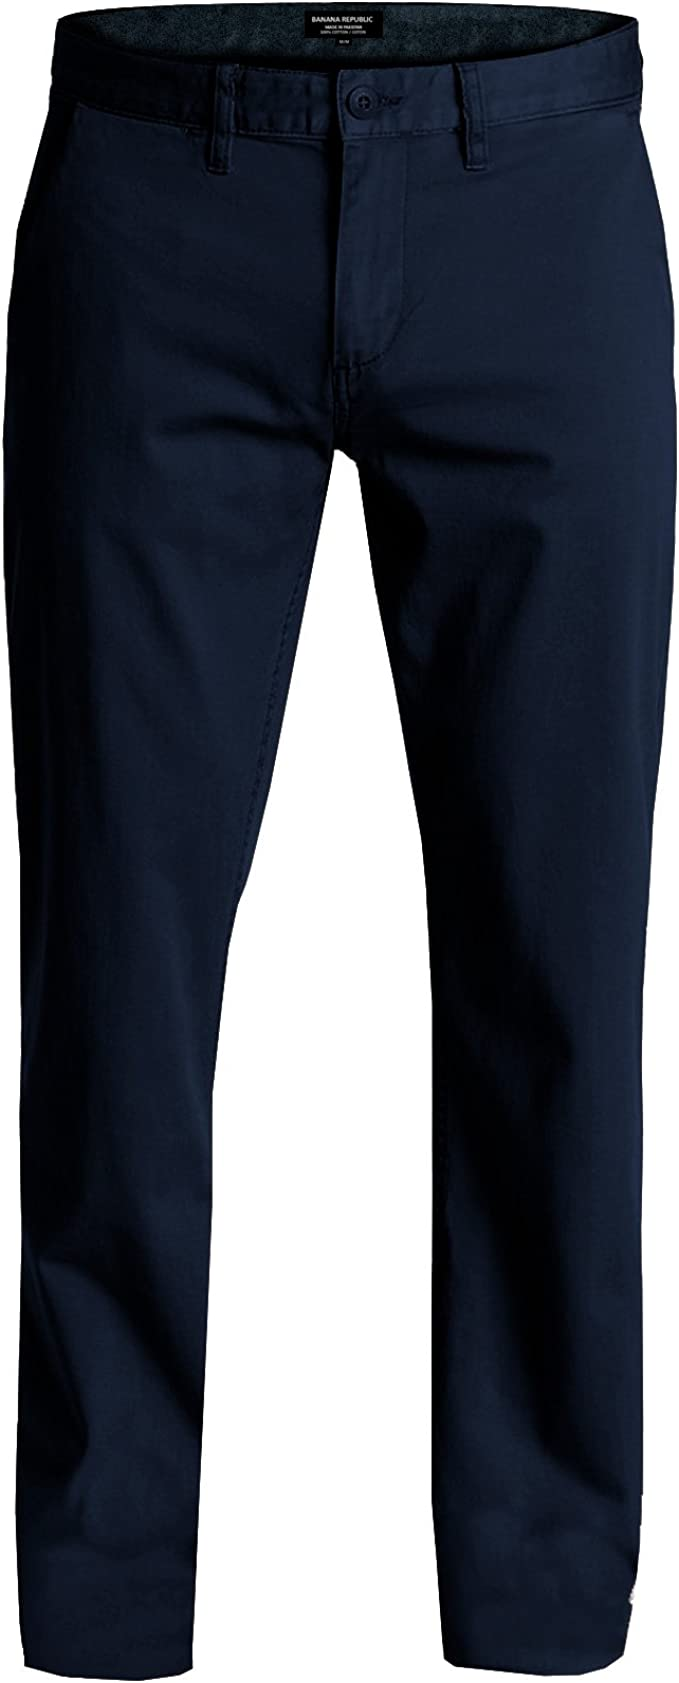 Top 10 Best Chinos for Men (2020 Reviews & Buying Guide) 3